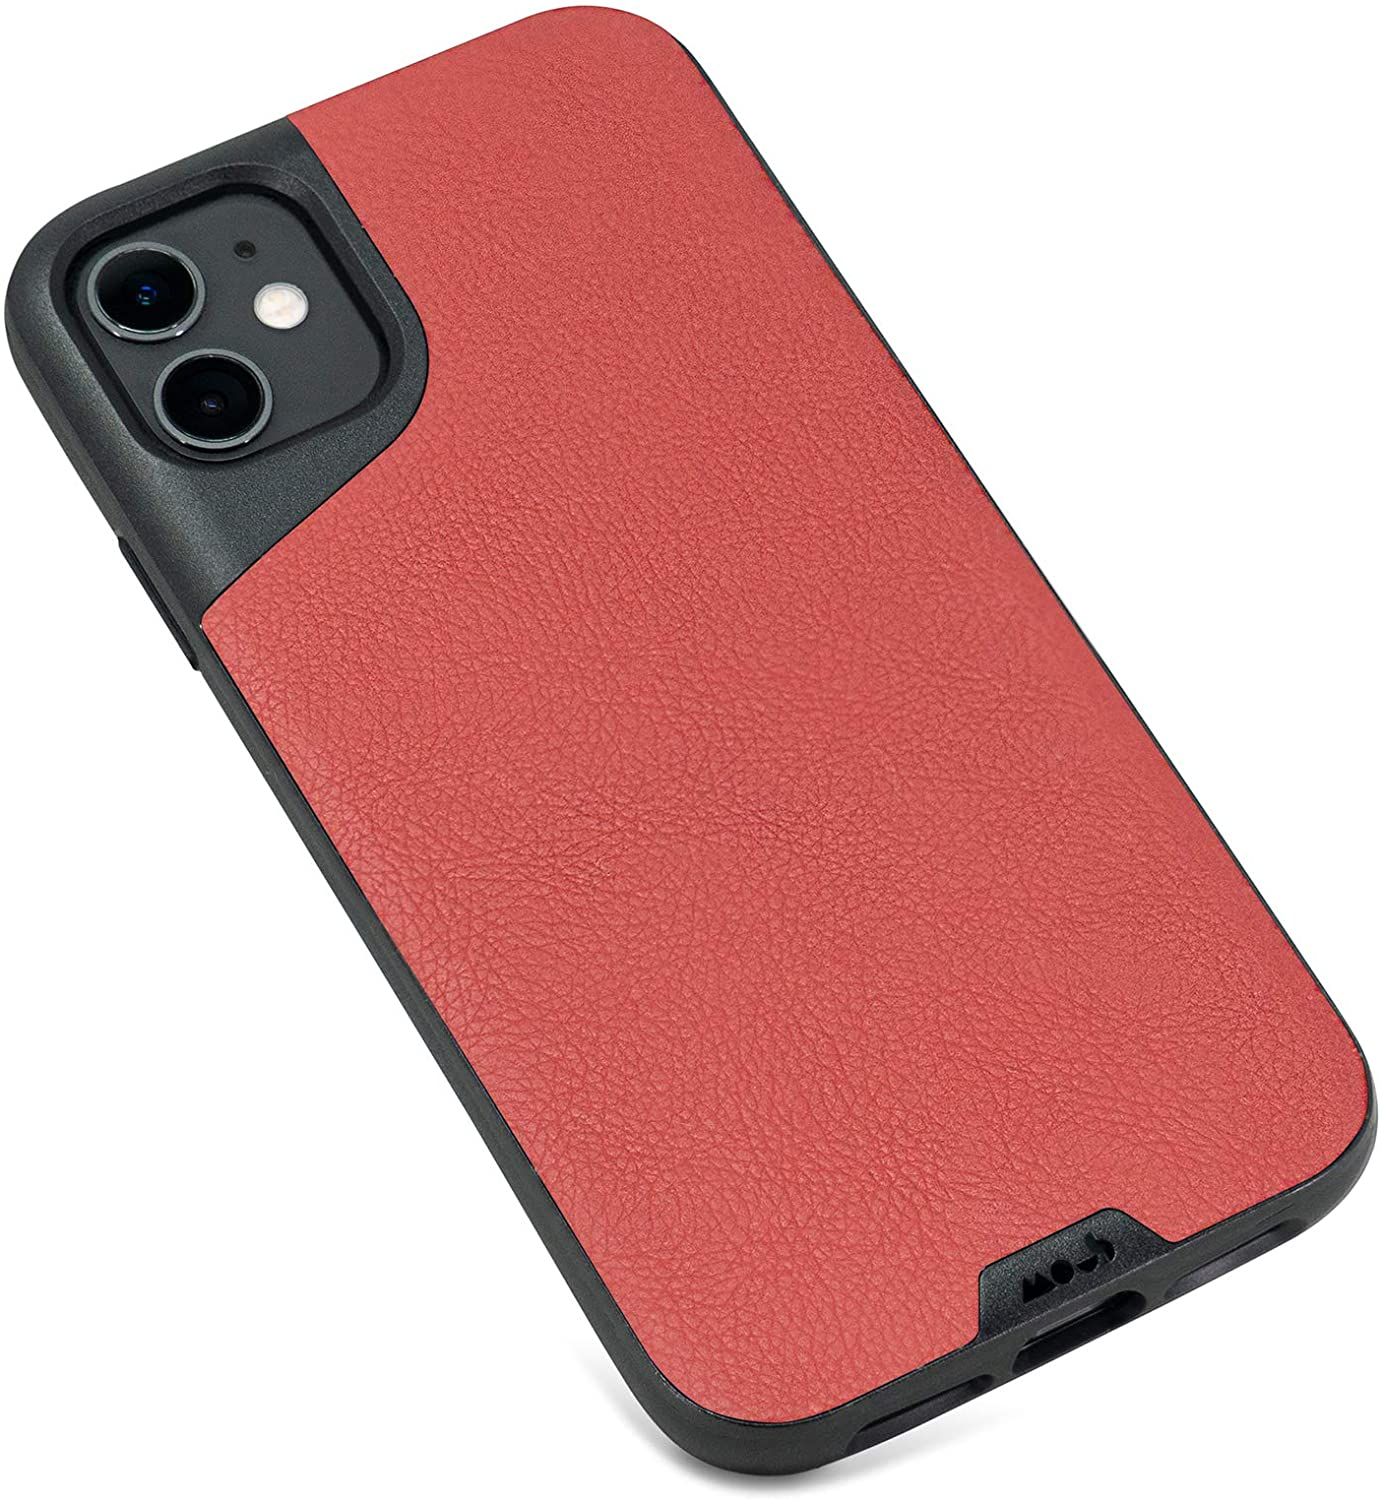 Mous - Protective Case for iPhone 11 - Contour - Red Leather - No Screen Protector